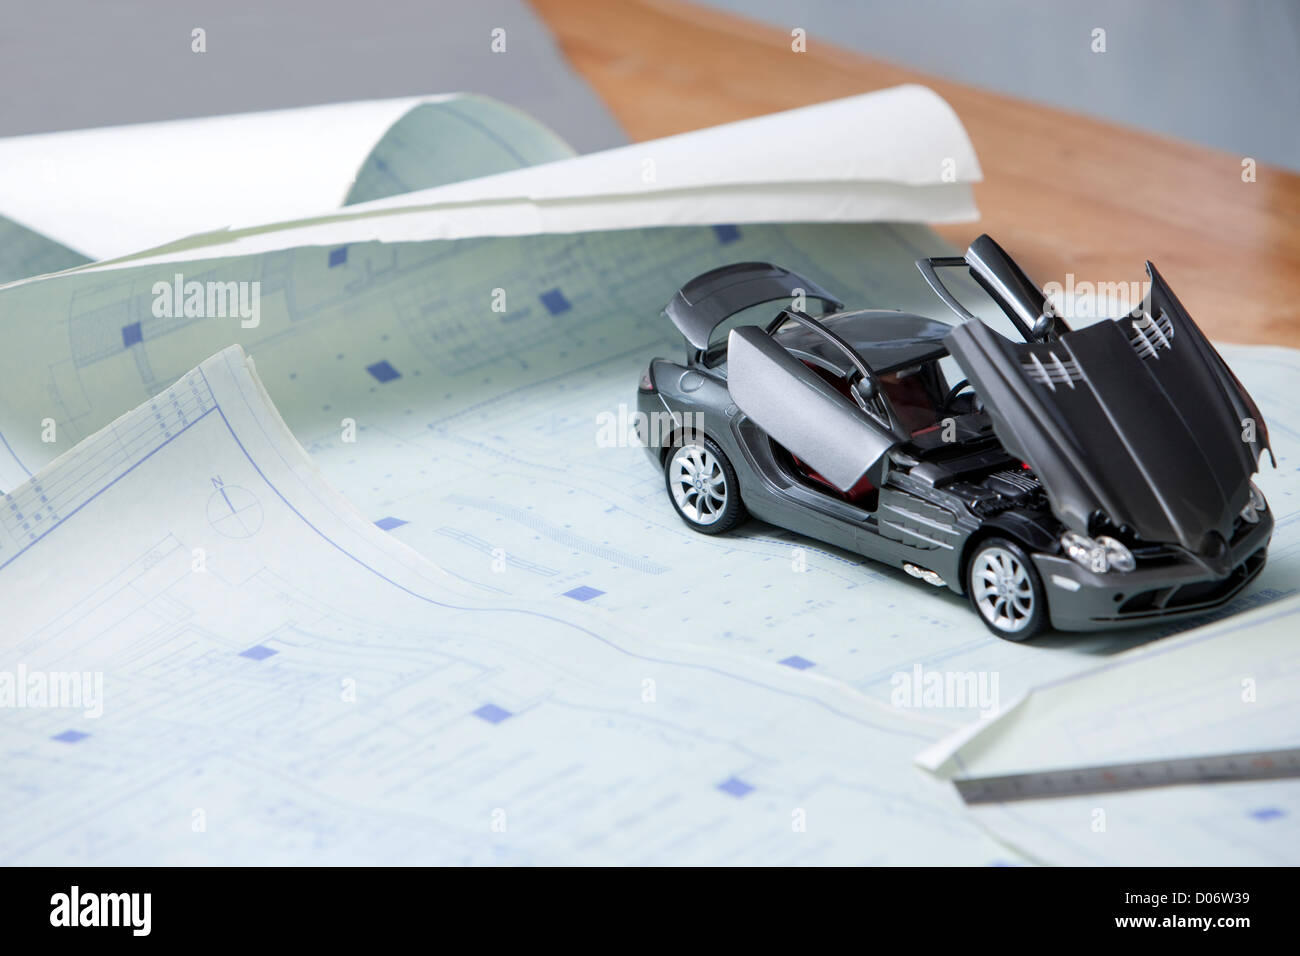 Sketch Blueprint Car Stockfotos & Sketch Blueprint Car Bilder - Alamy